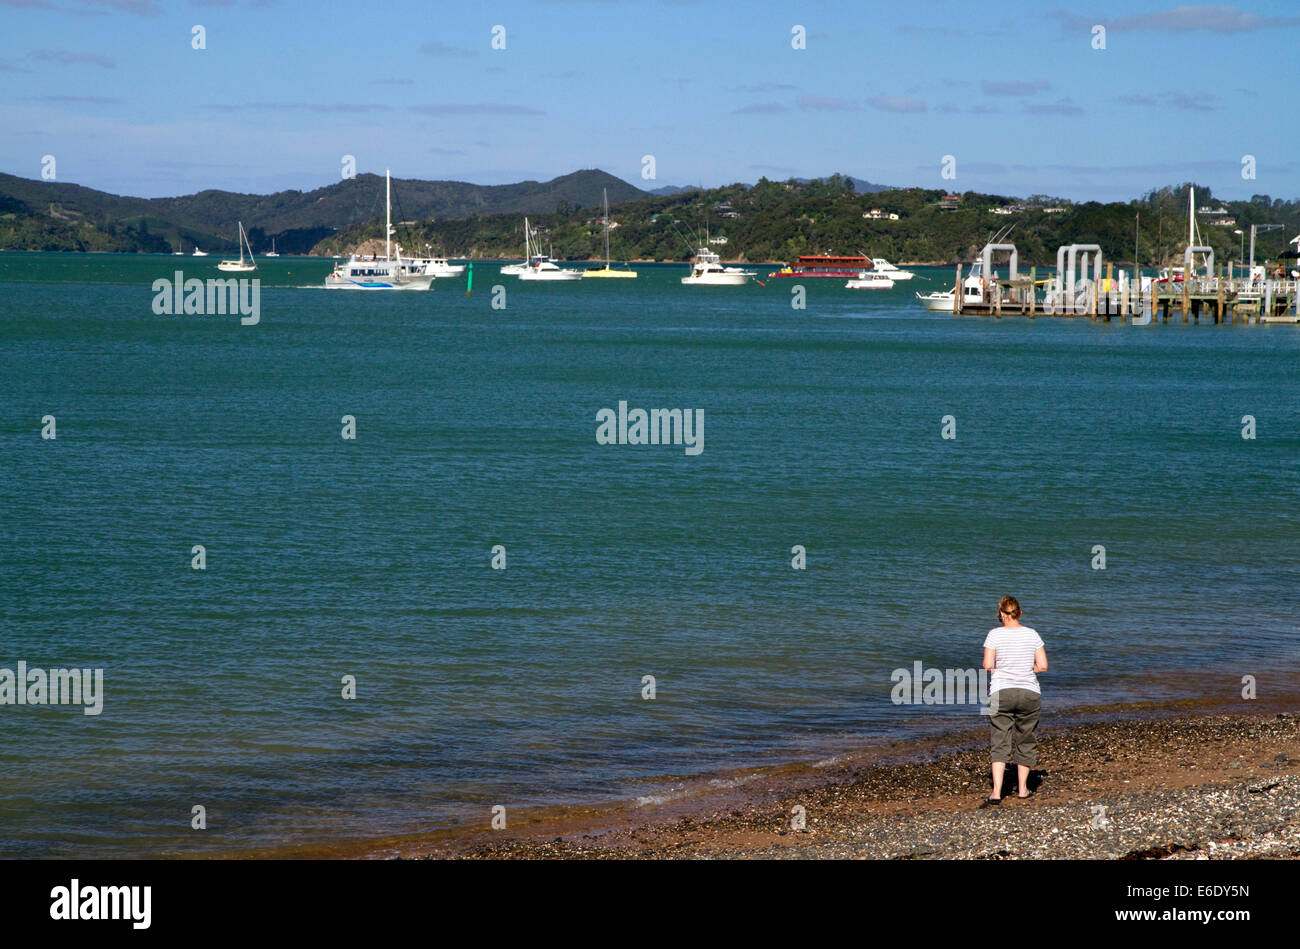 Bay of Islands at the town of Paihia, North Island, New Zealand. Stock Photo